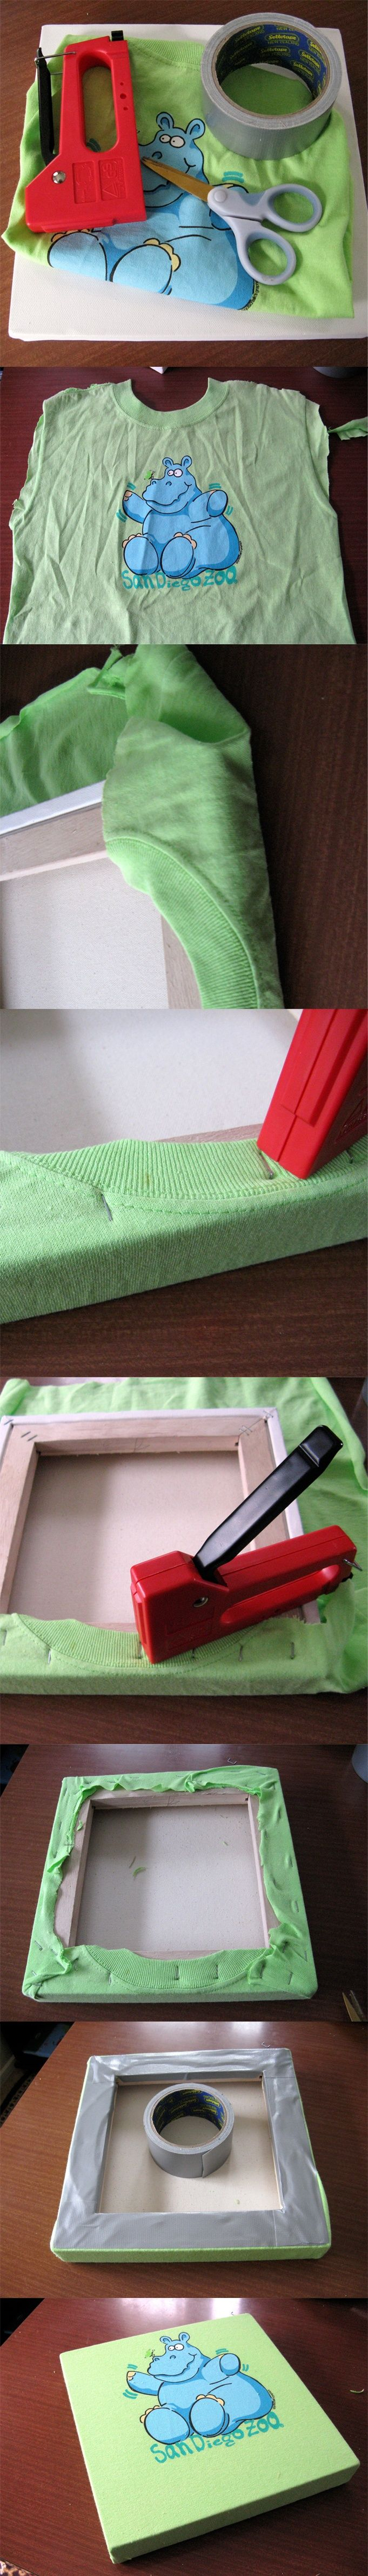 DIY Recycle an old t-shirt into a nice canvas || Recicla una camiseta en un cuadro de pared